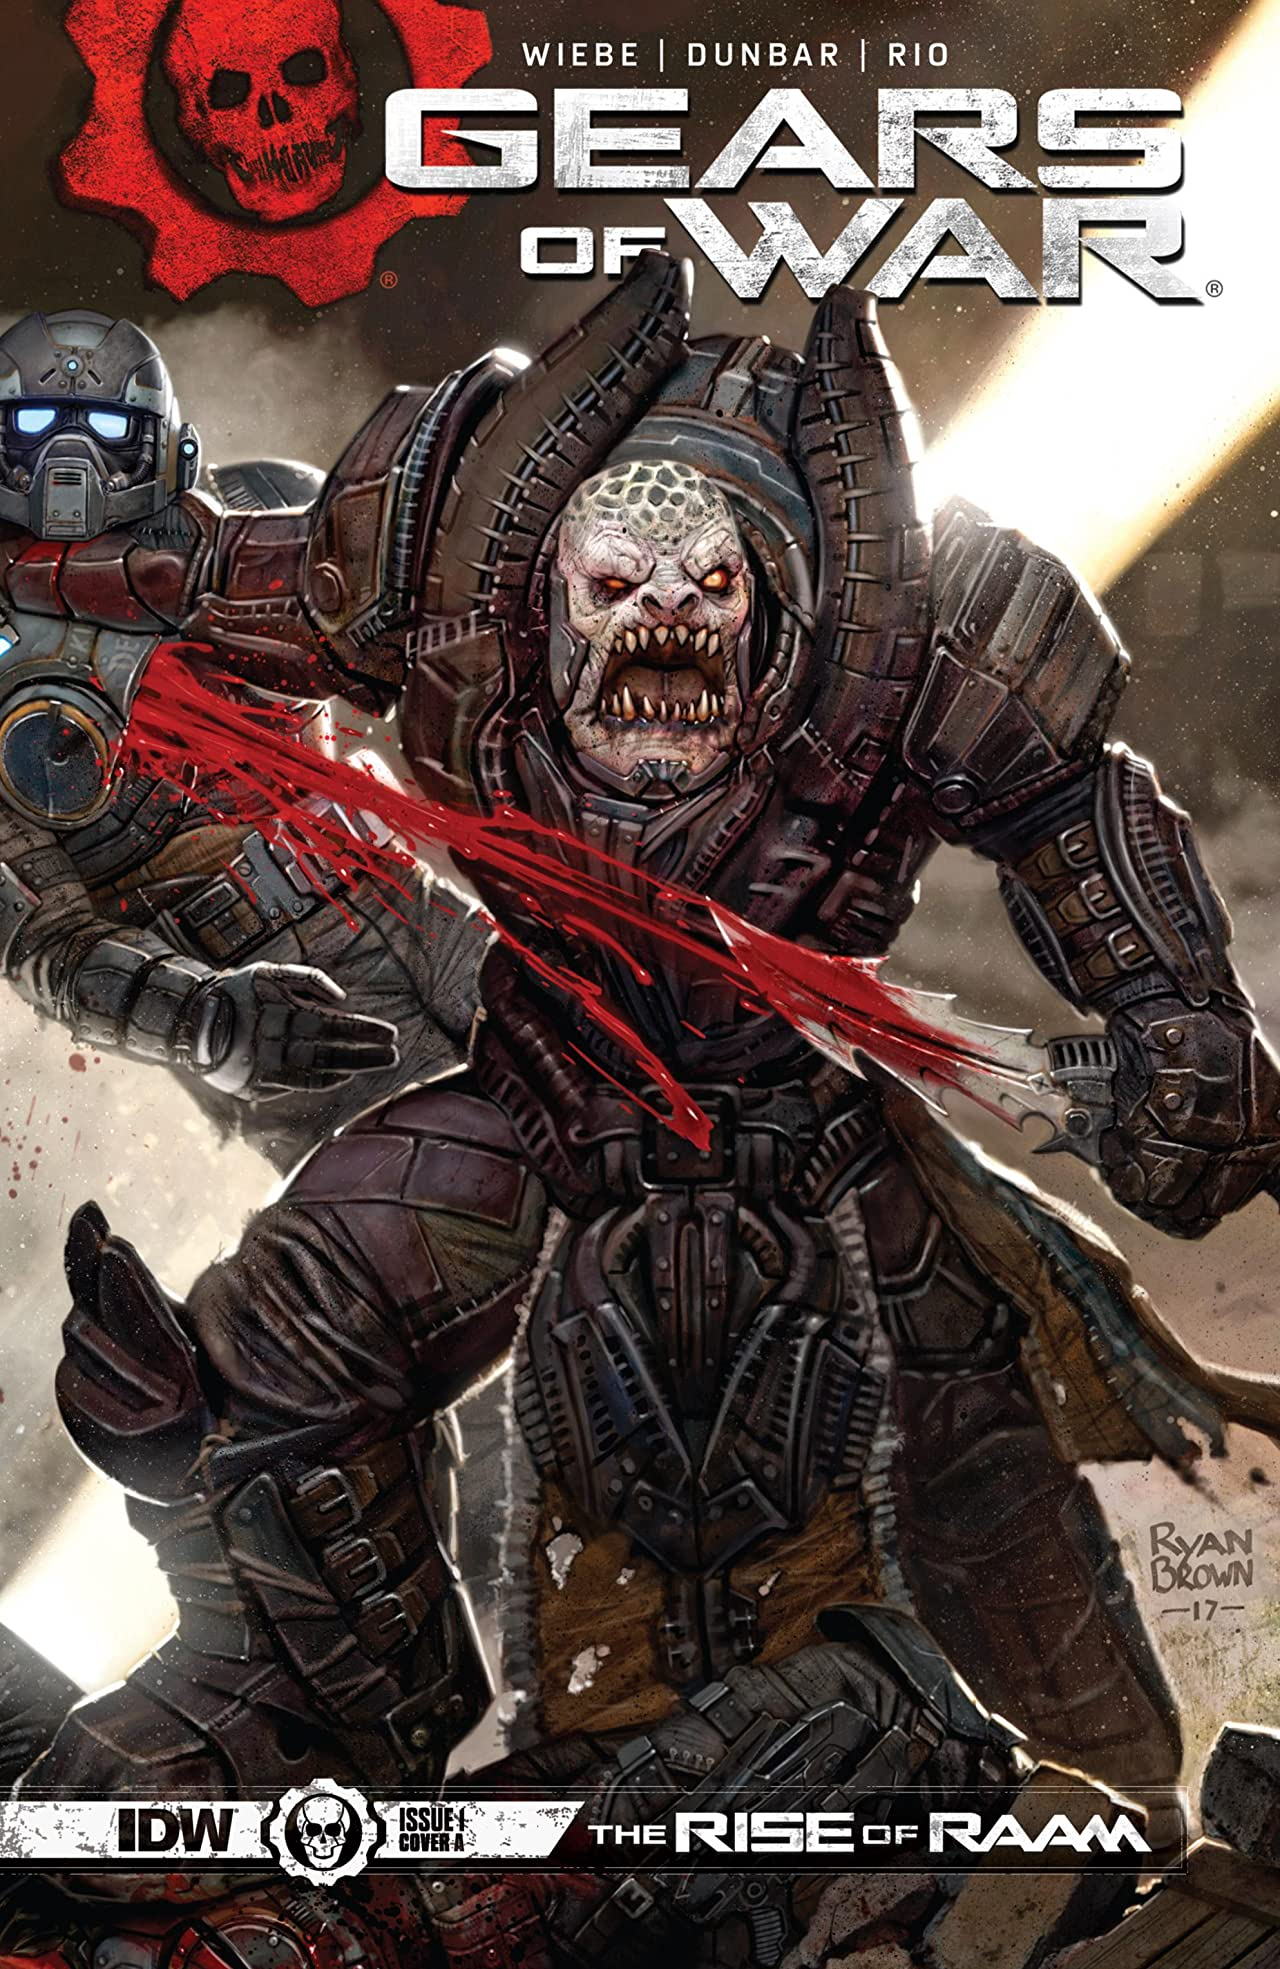 Gears of War: The Rise of RAAM #1